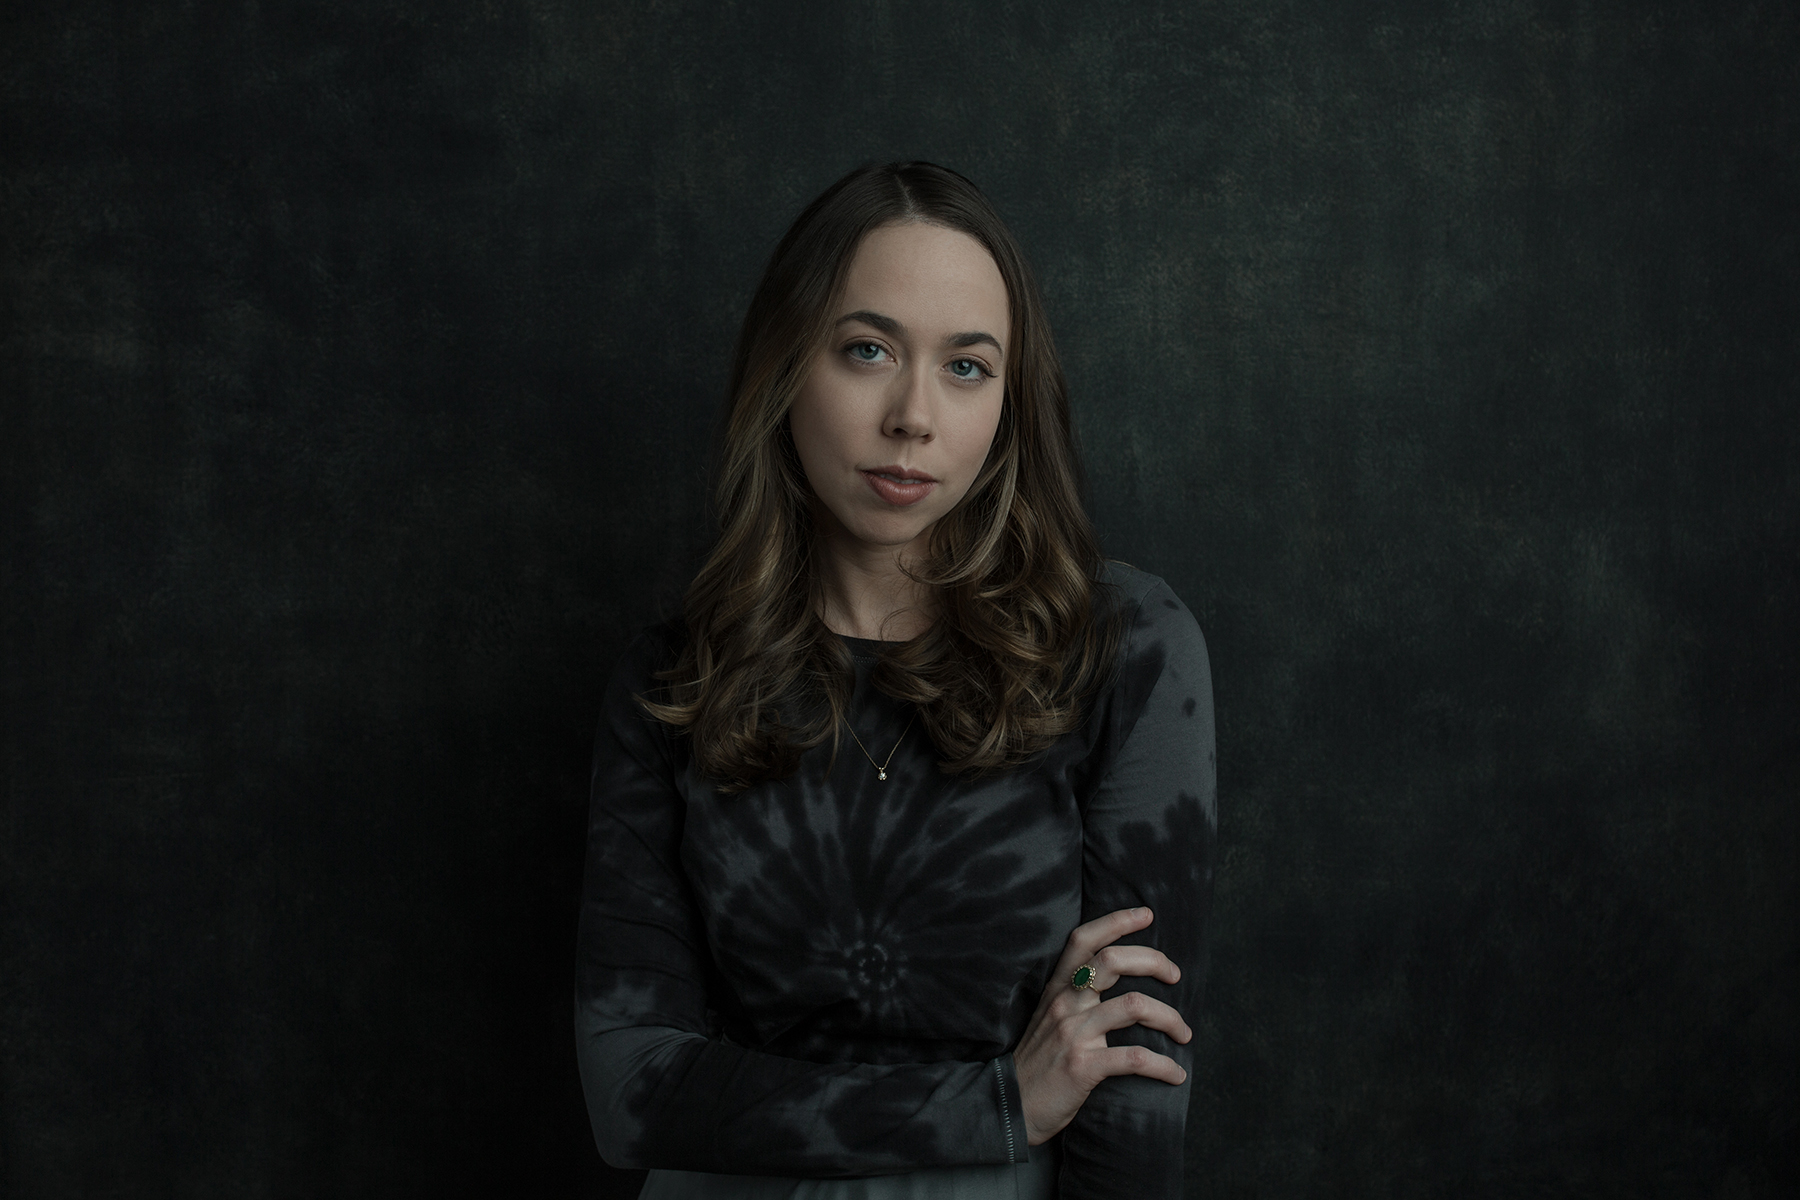 Sarah Jarosz Previews New Album 'World on the Ground' With Wistful Song 'Johnny'